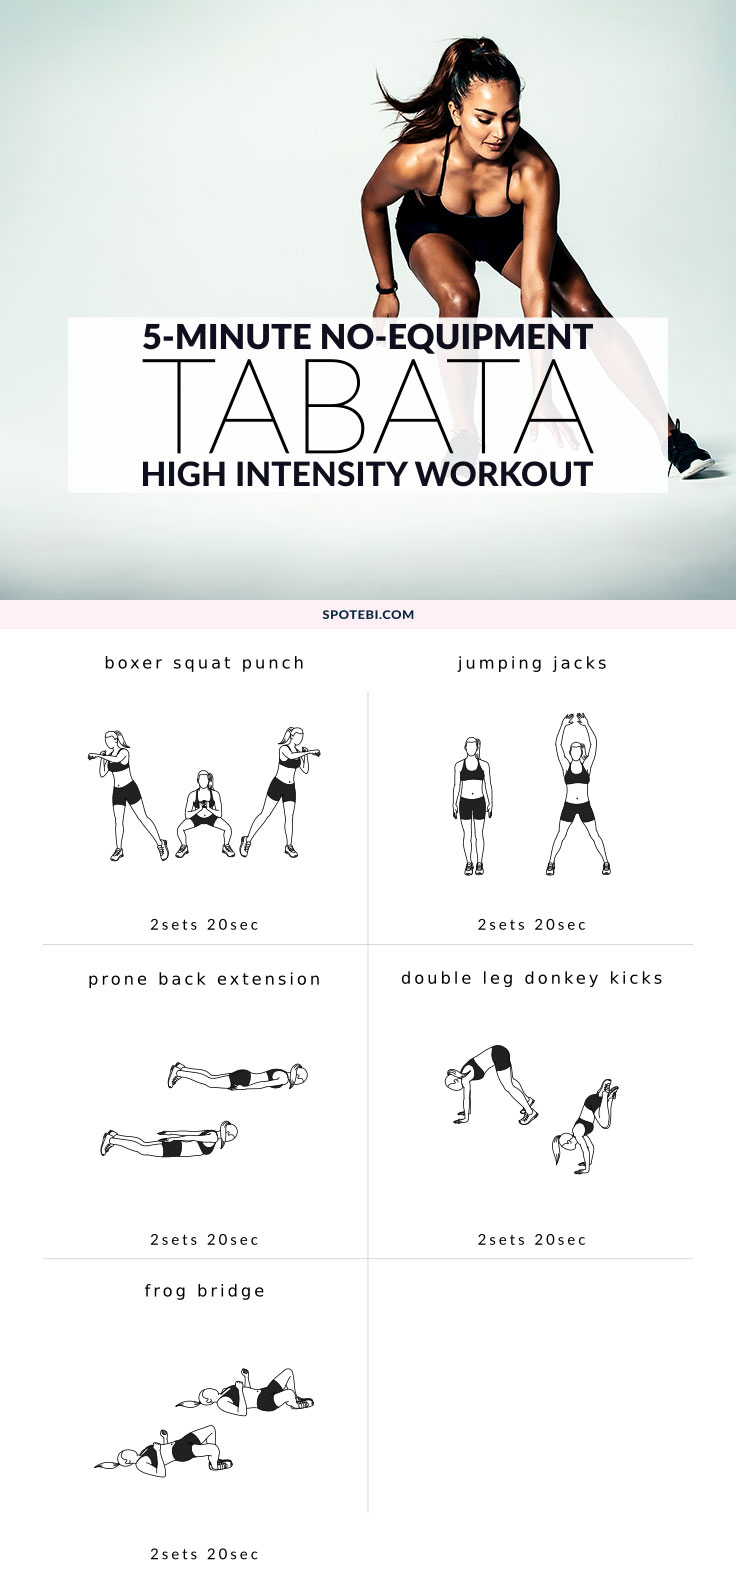 If you're always short on time and keep finding excuses not to exercise, then our 5-minute Tabata workout is perfect for you. This high-intensity circuit works your whole body and with no equipment needed and a ready-to-go Tabata timer you have no excuse not to give it a try! https://www.spotebi.com/workout-routines/no-equipment-tabata-workout-timer-music-playlist/